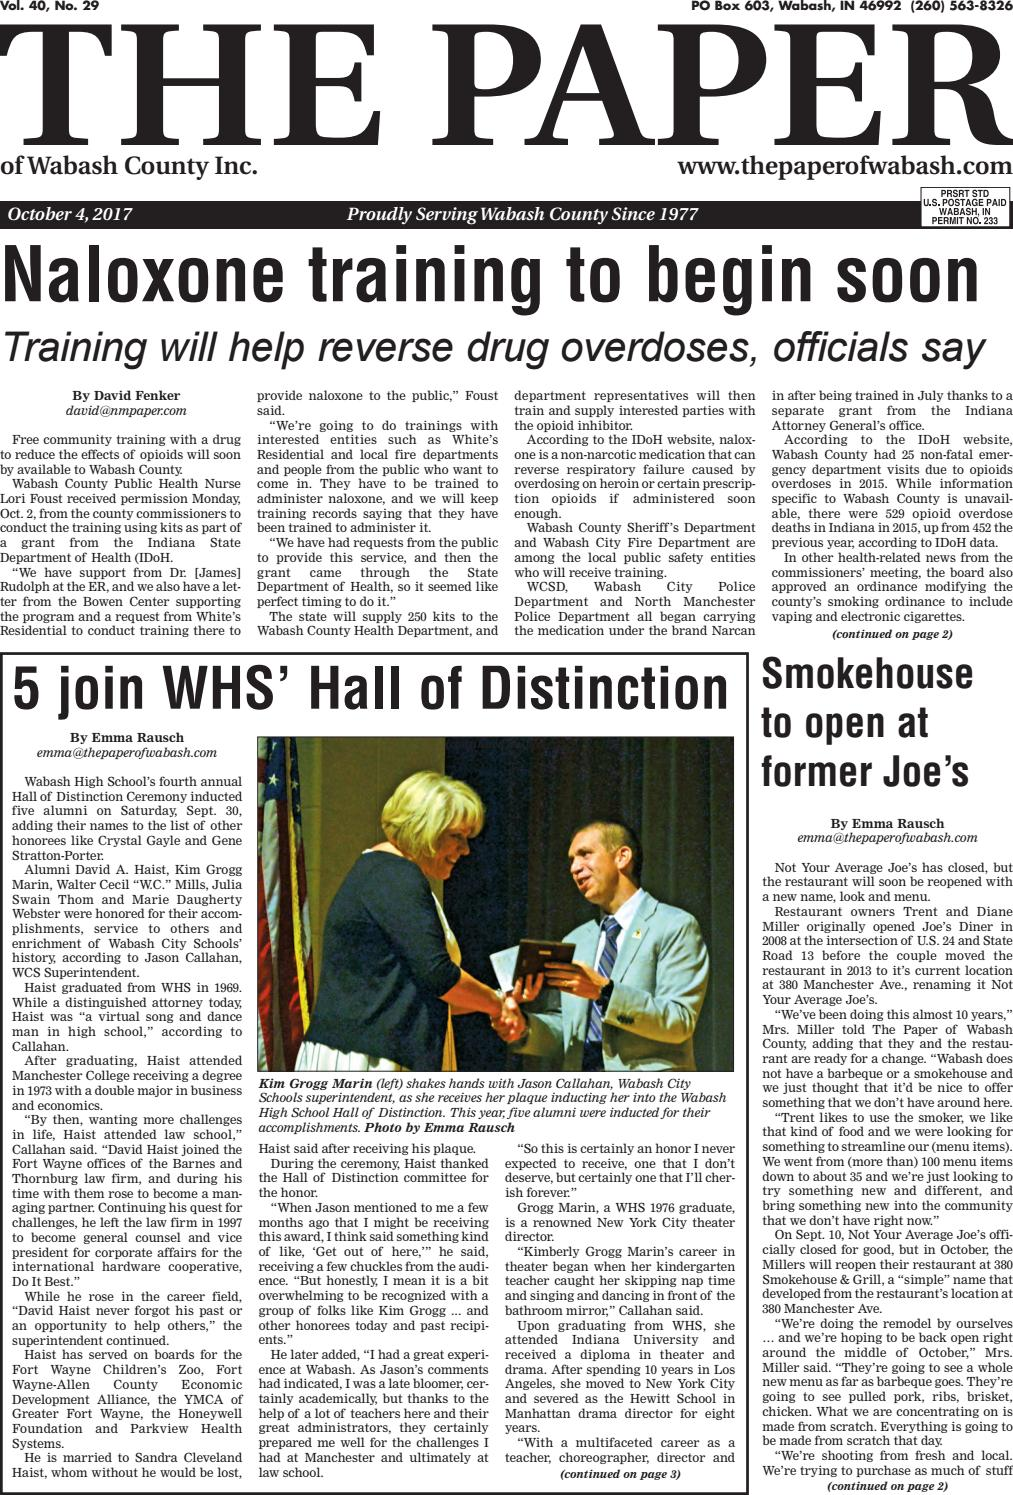 The Paper of Wabash County - Oct. 4, 2017, Issue by The Paper of ...